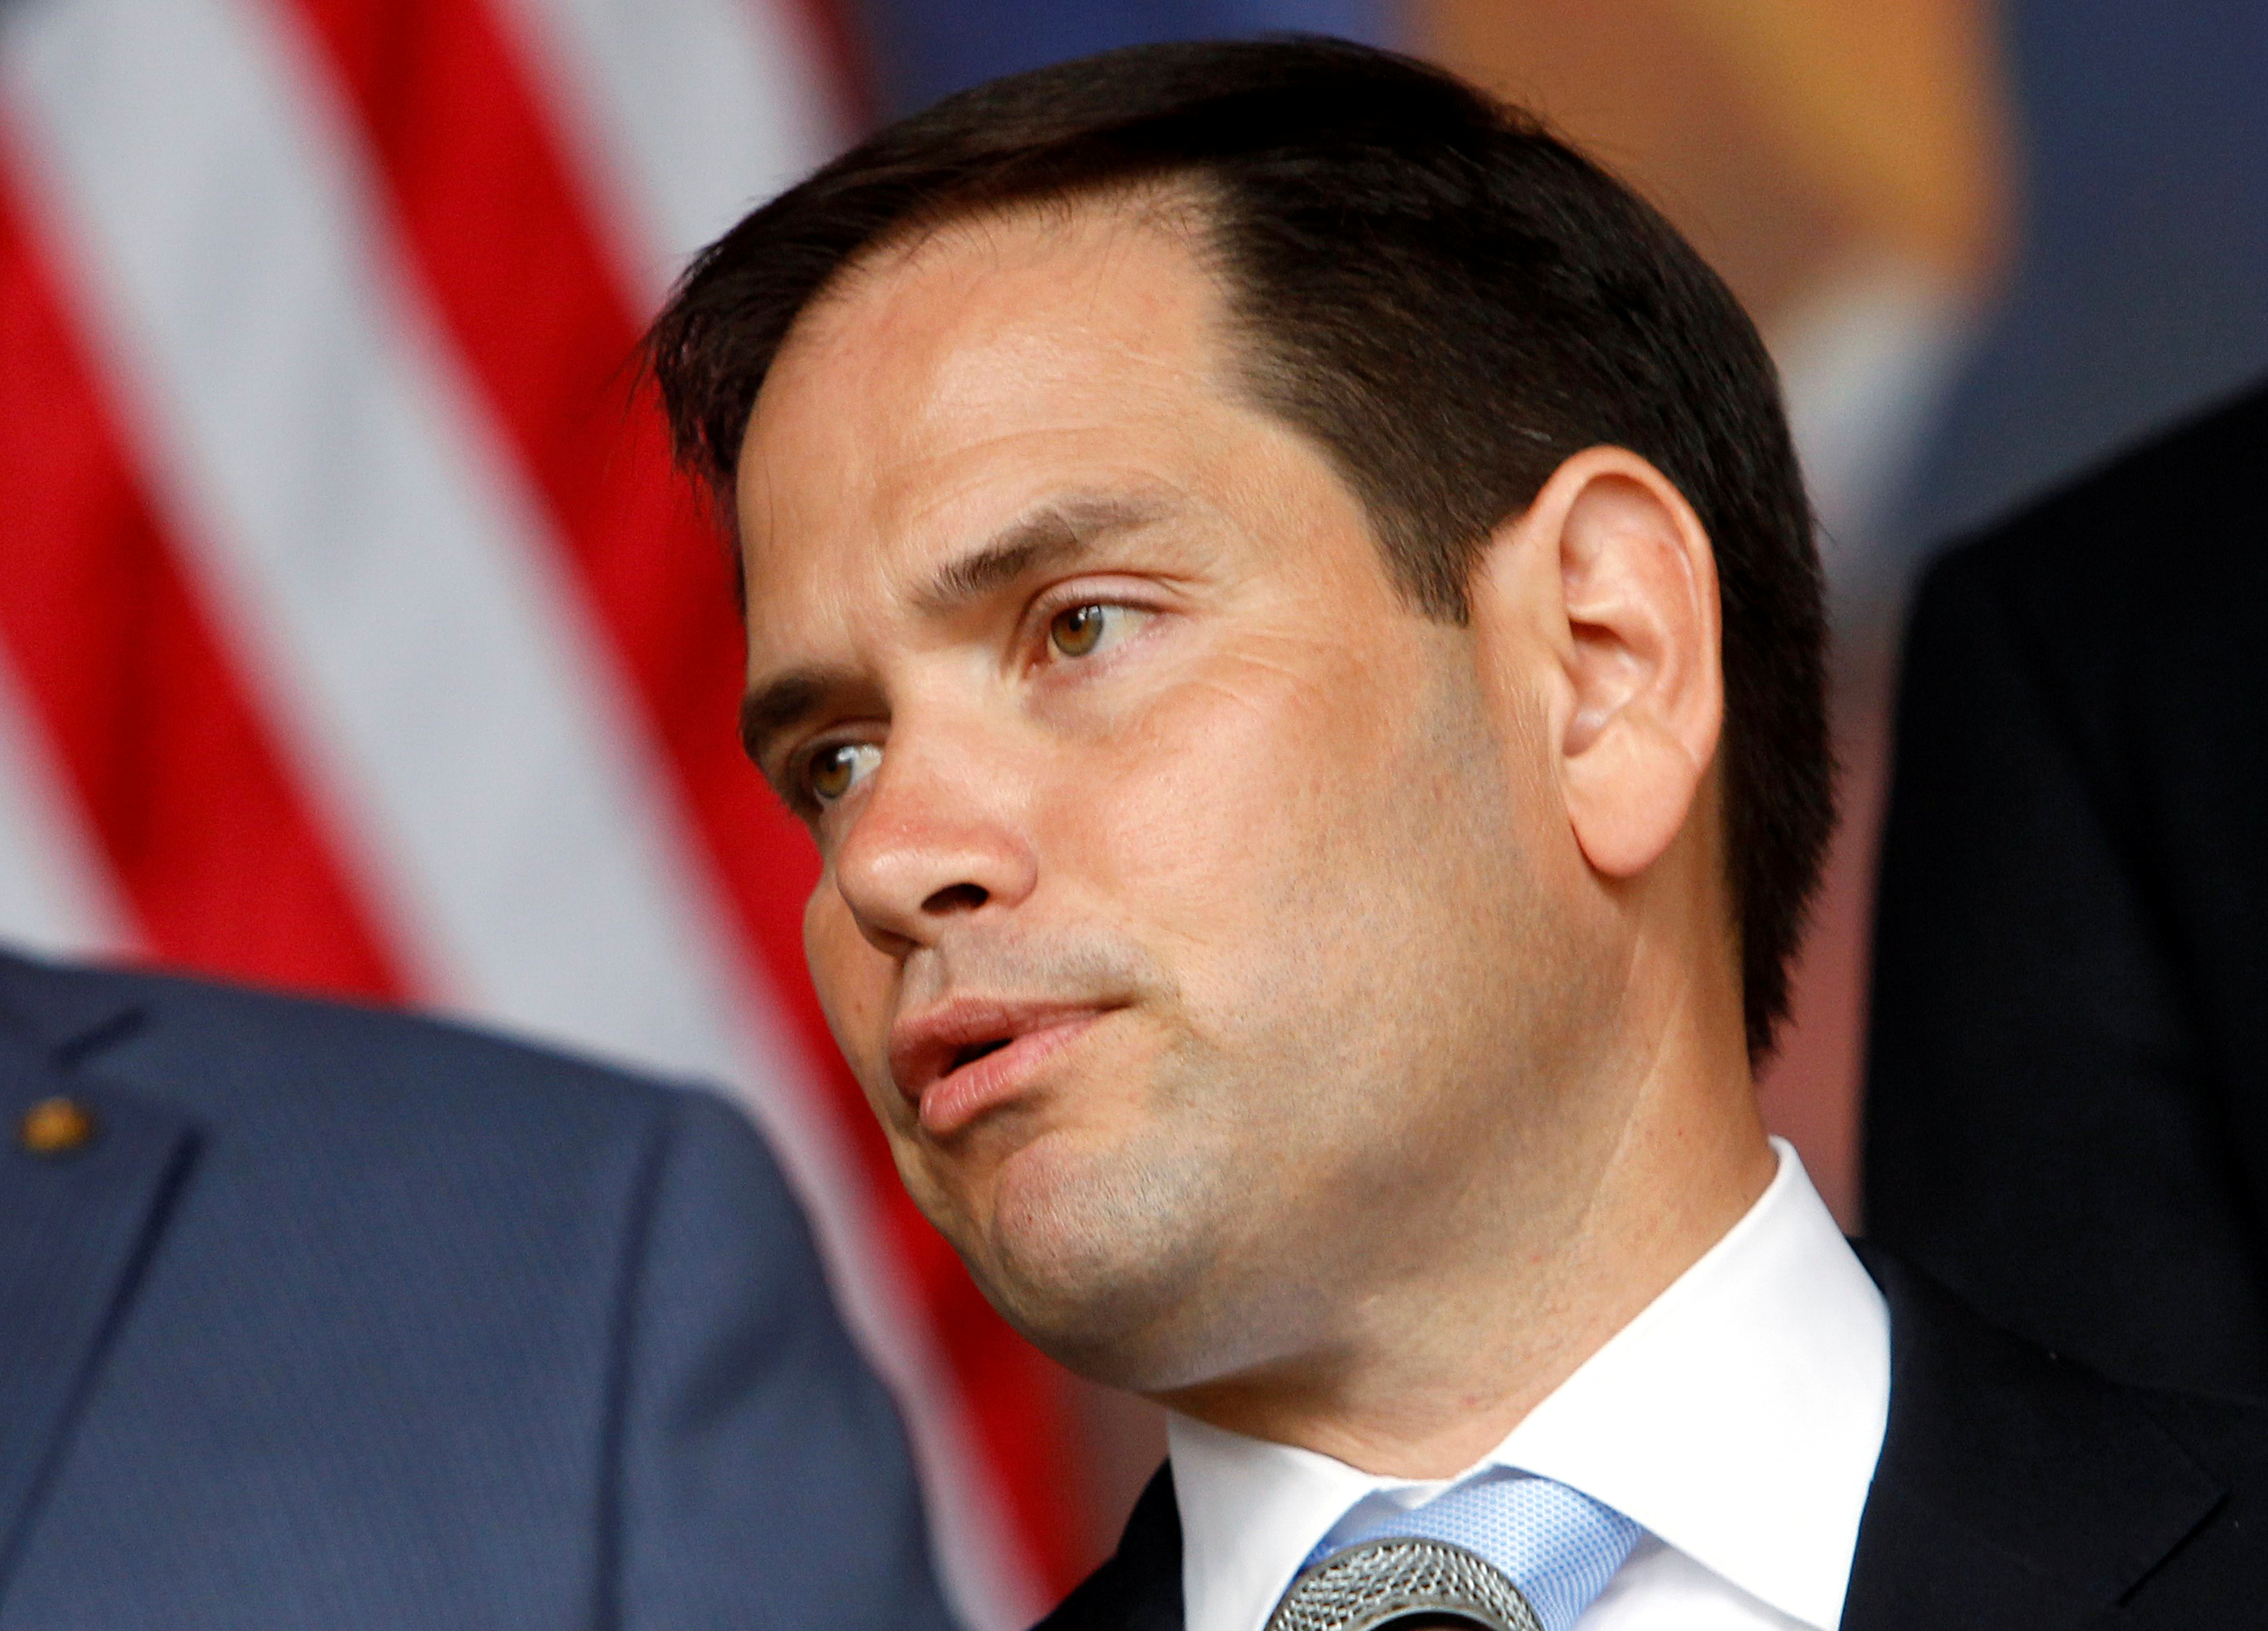 marco his campaign was target cyberattacks